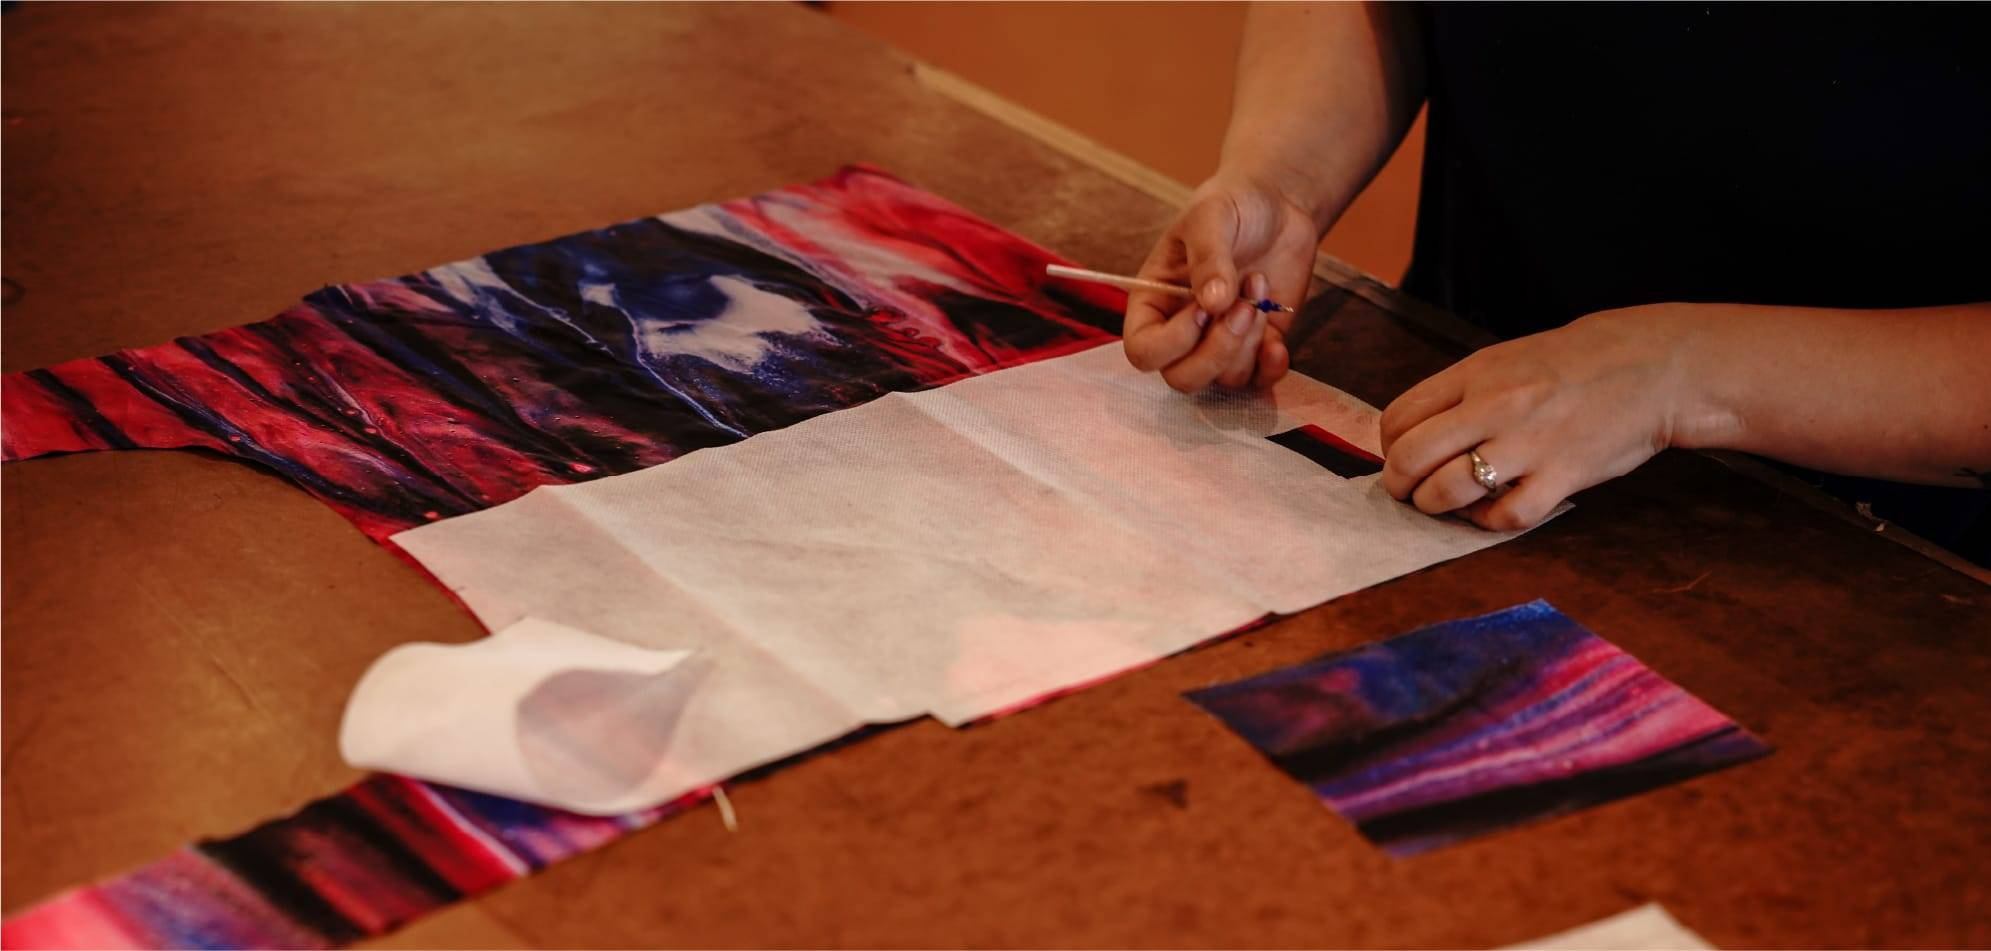 Woman cutting out the pattern of a reusable tote